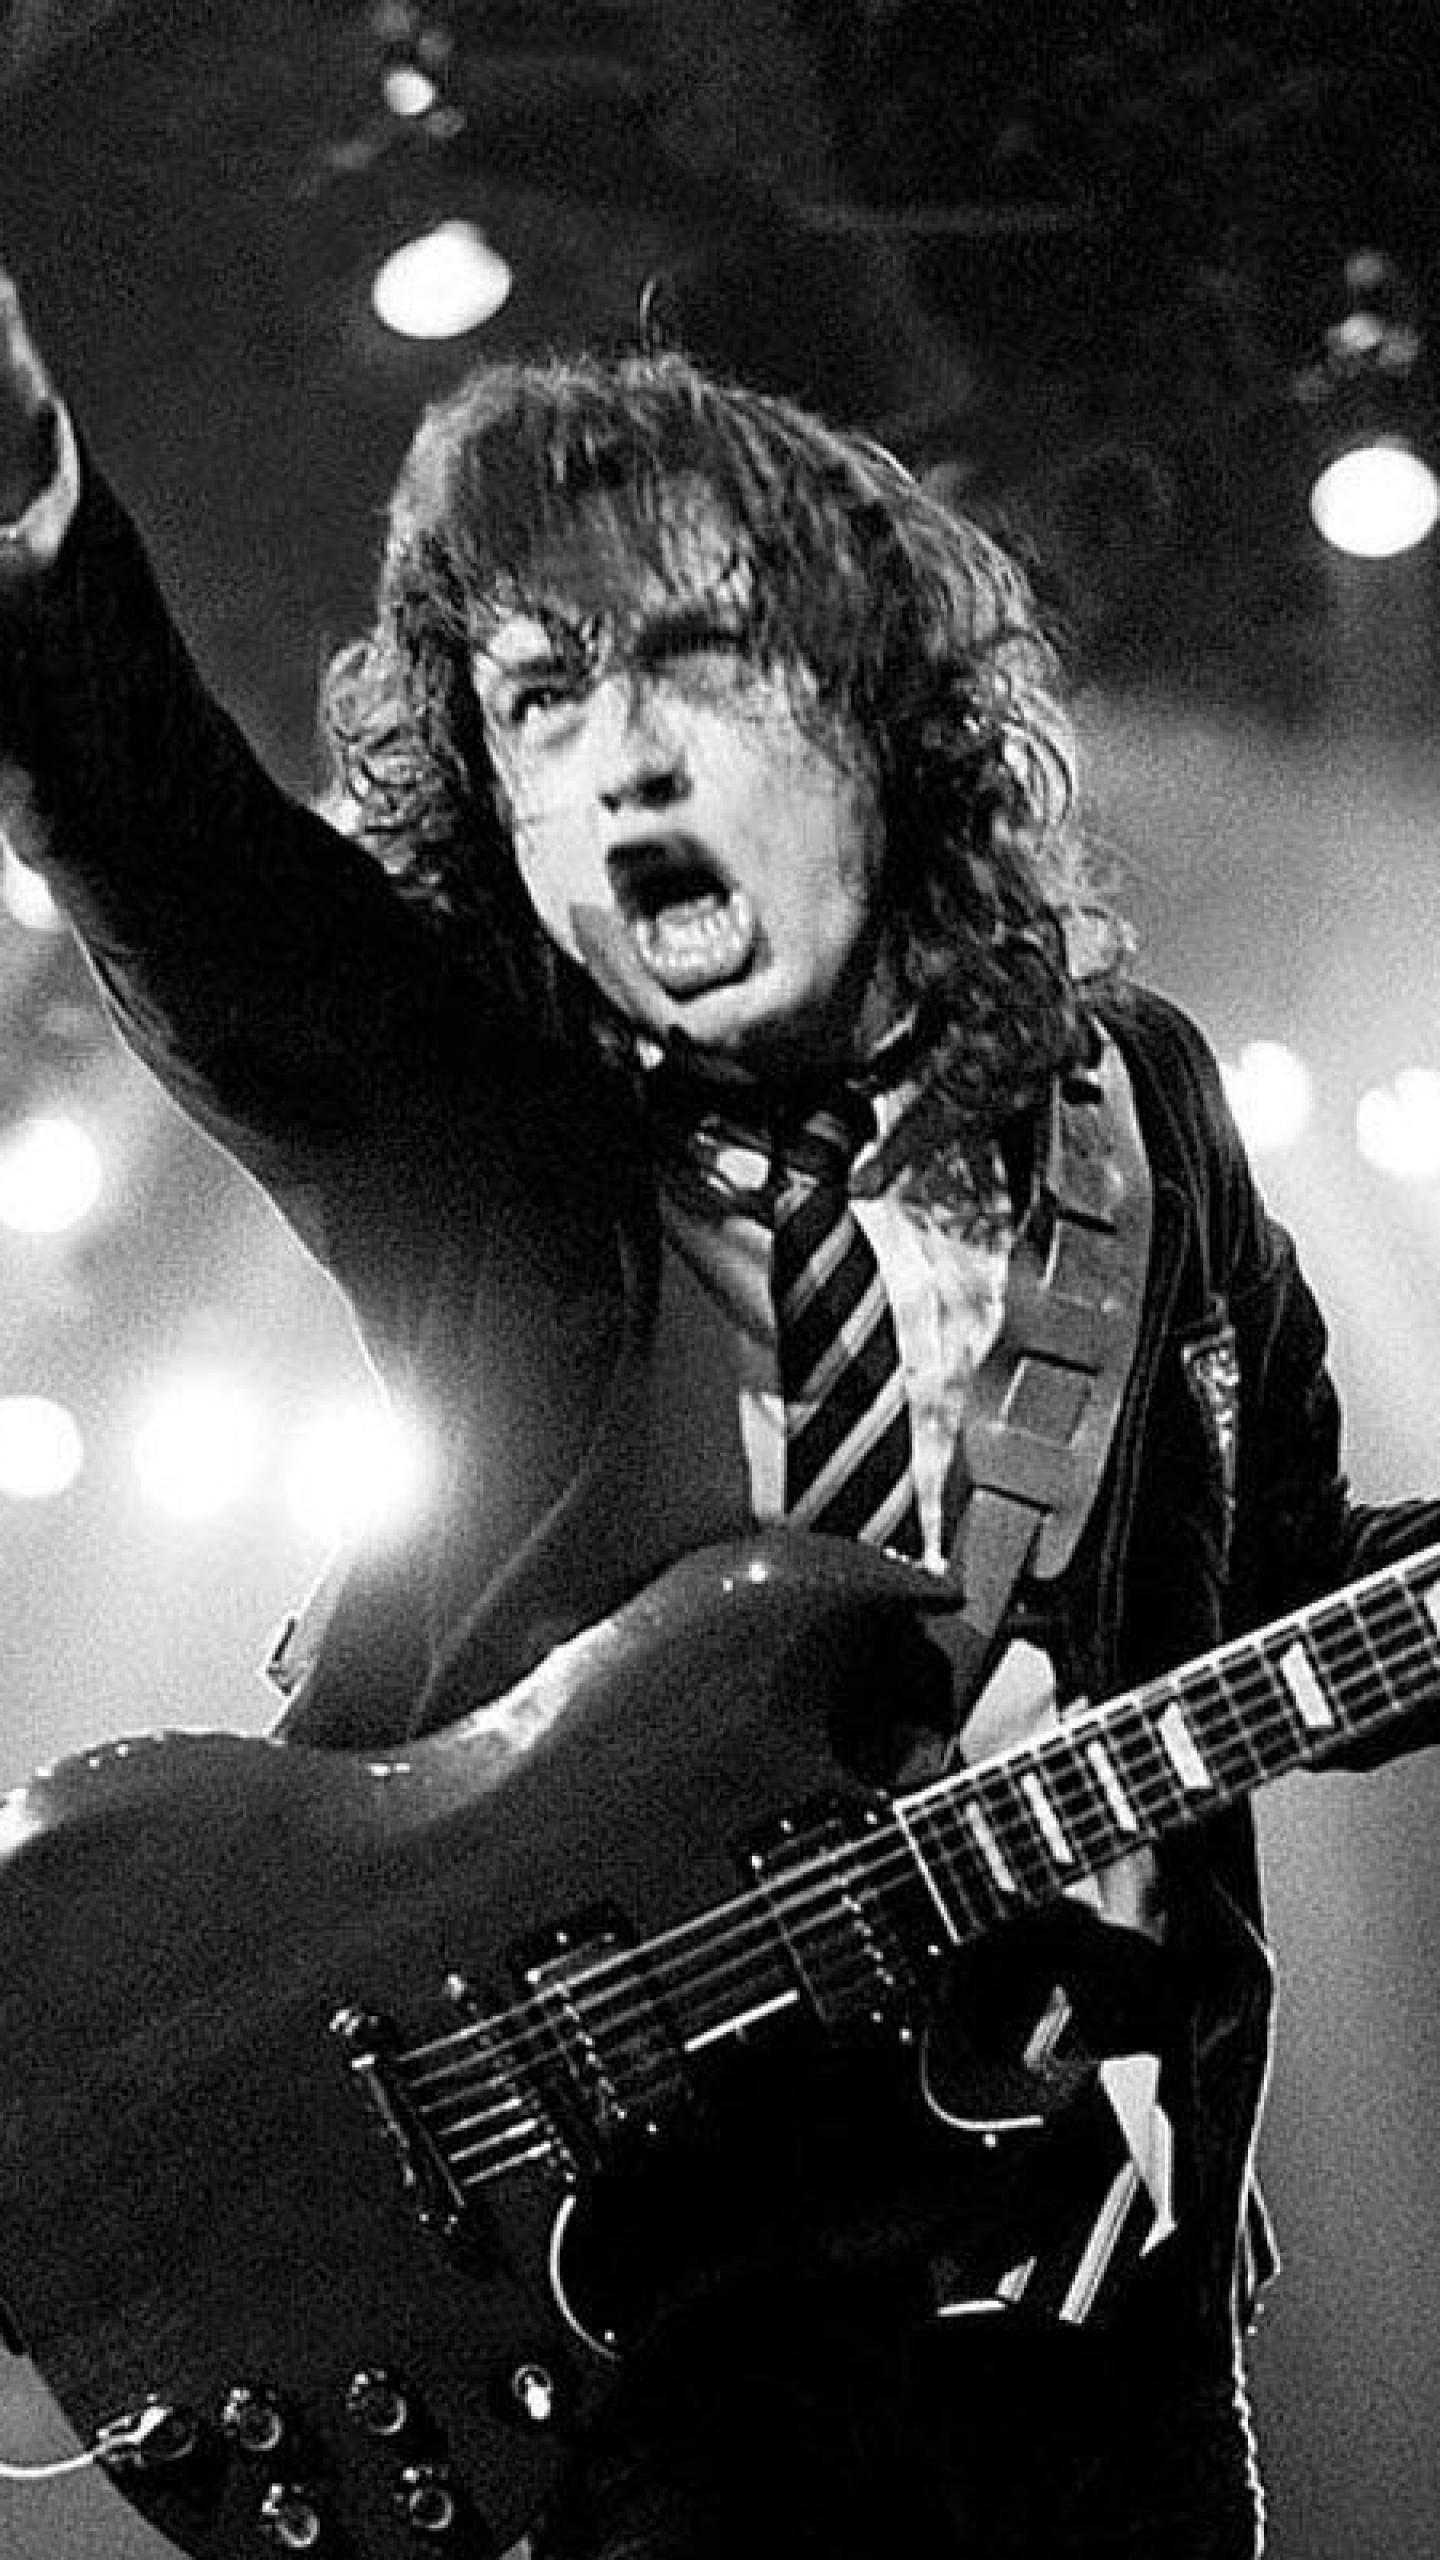 Angus Young Wallpapers Top Free Angus Young Backgrounds